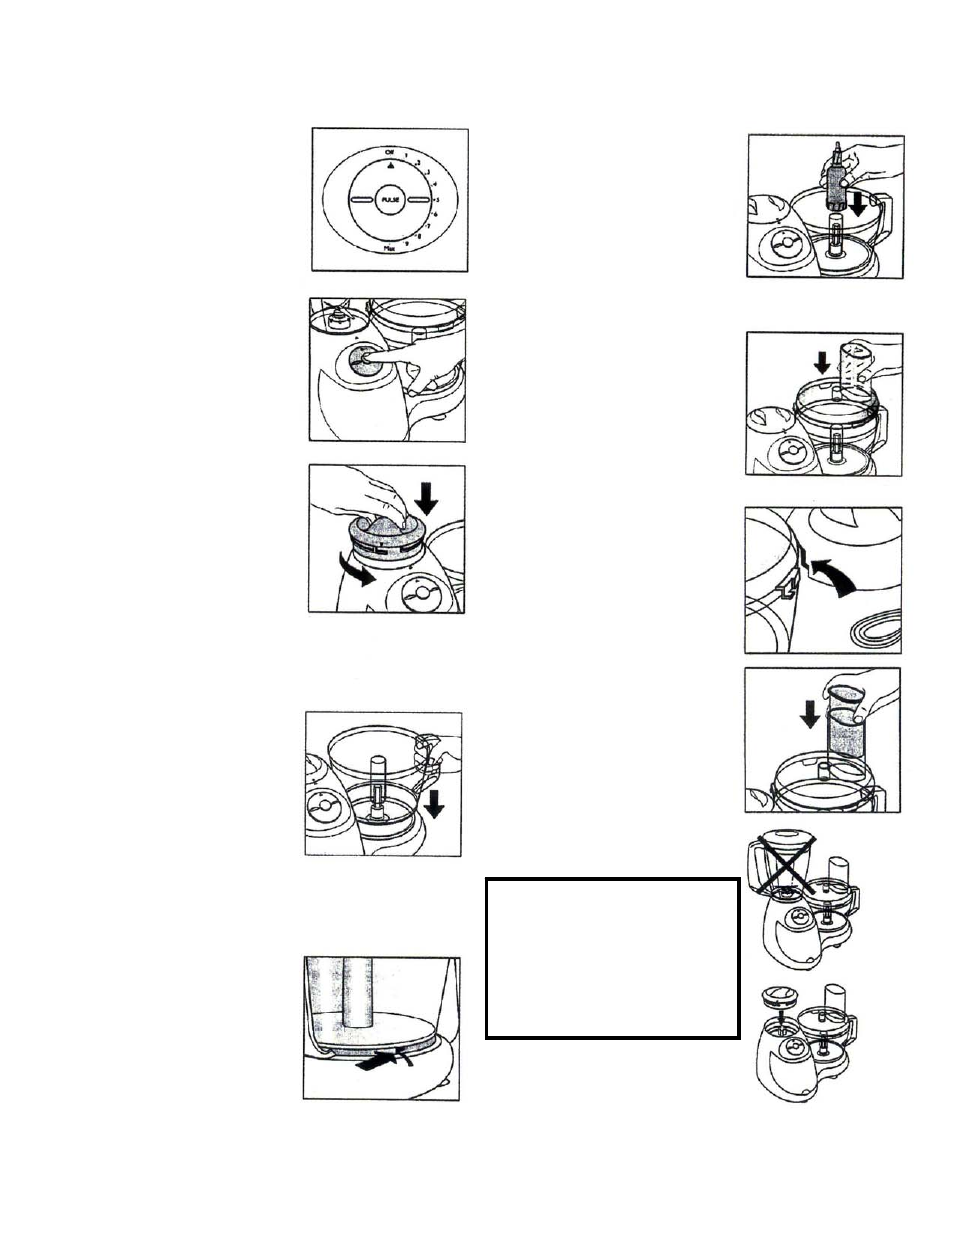 Instructions For Use Bravetti Food Processor With Blender Bp100